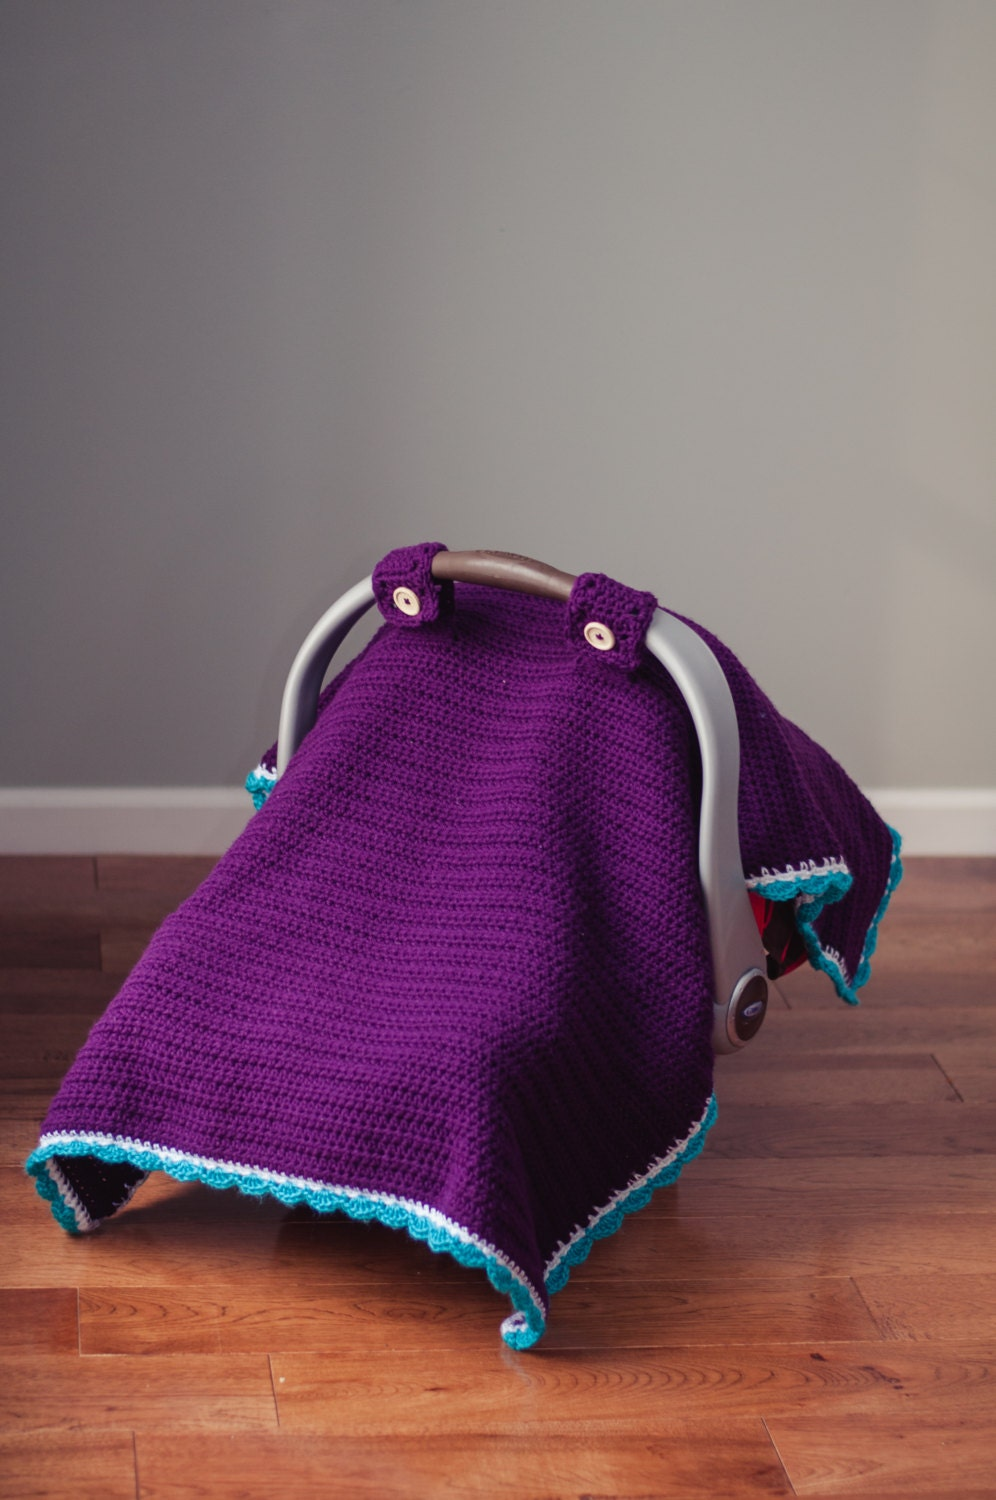 Car Seat Canopy Crochet Pattern : car seat canopy patterns - memphite.com